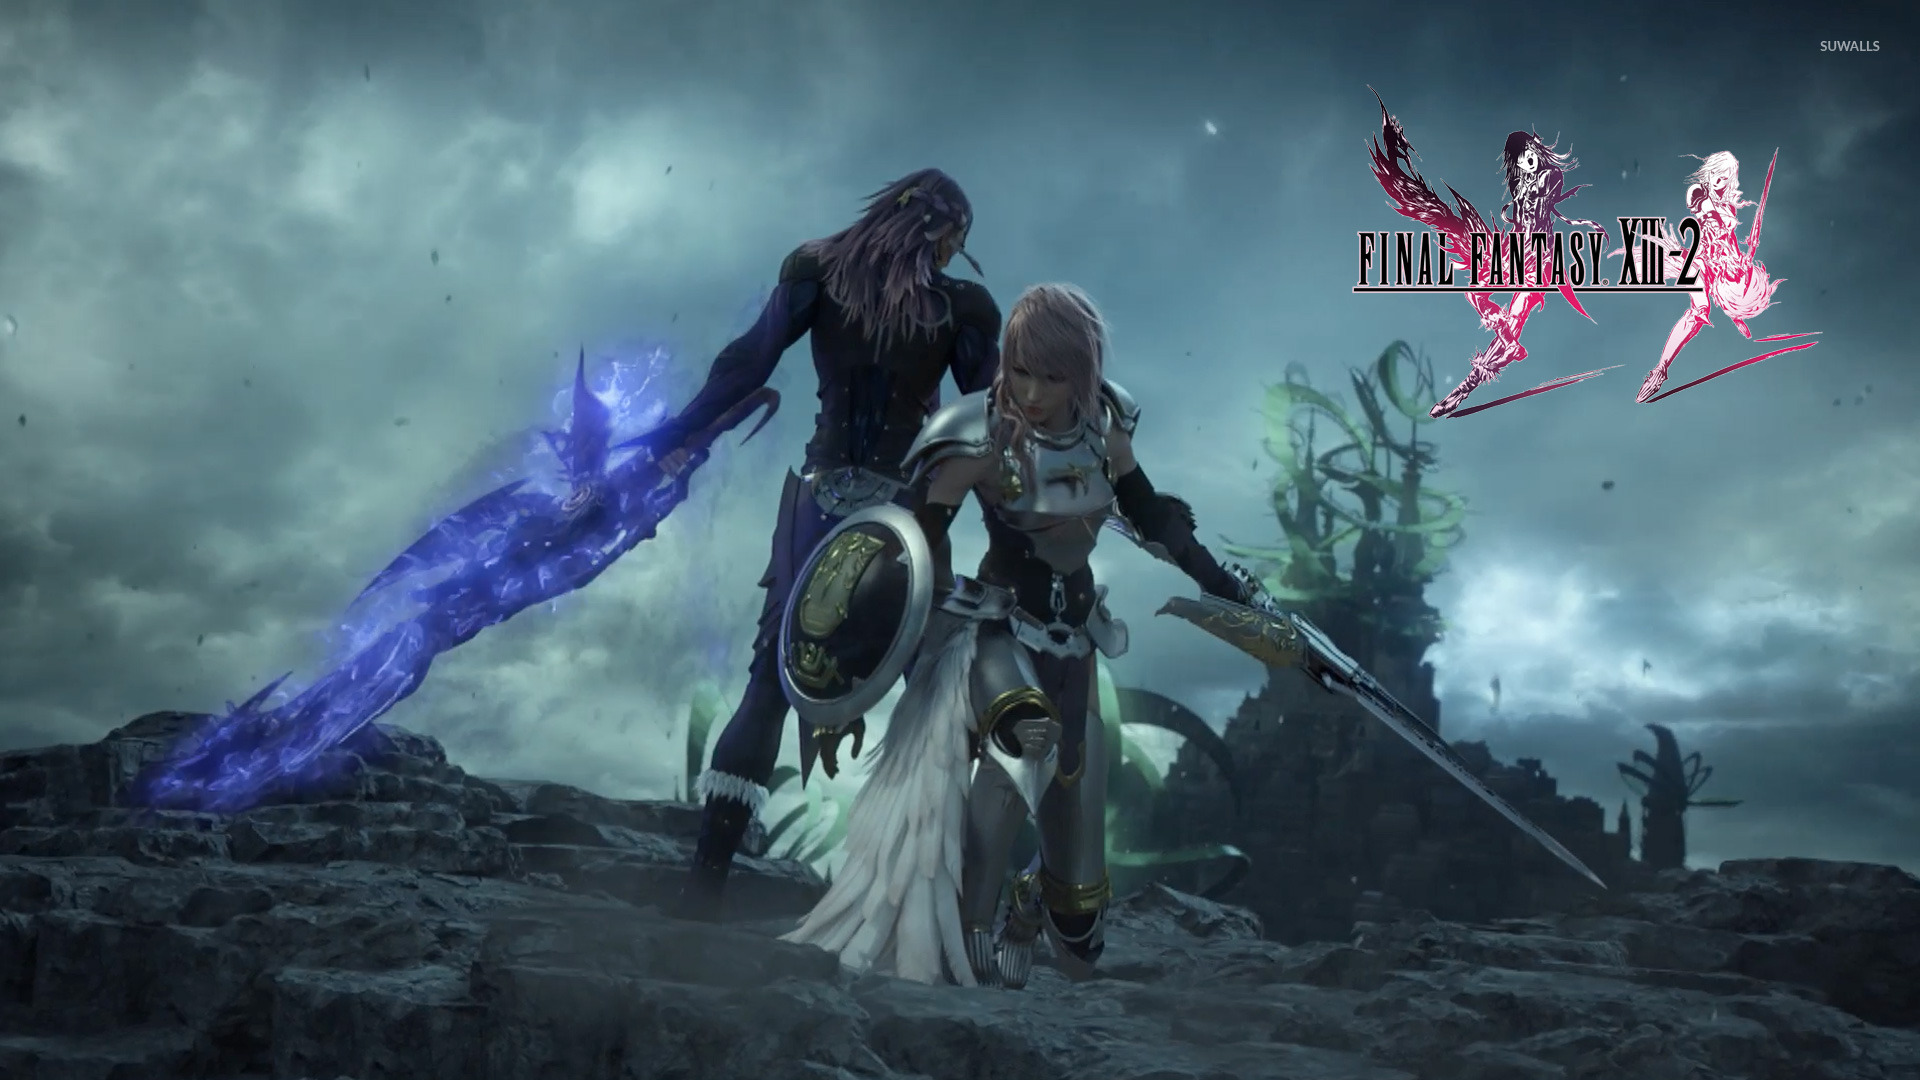 final fantasy xiv online pc download